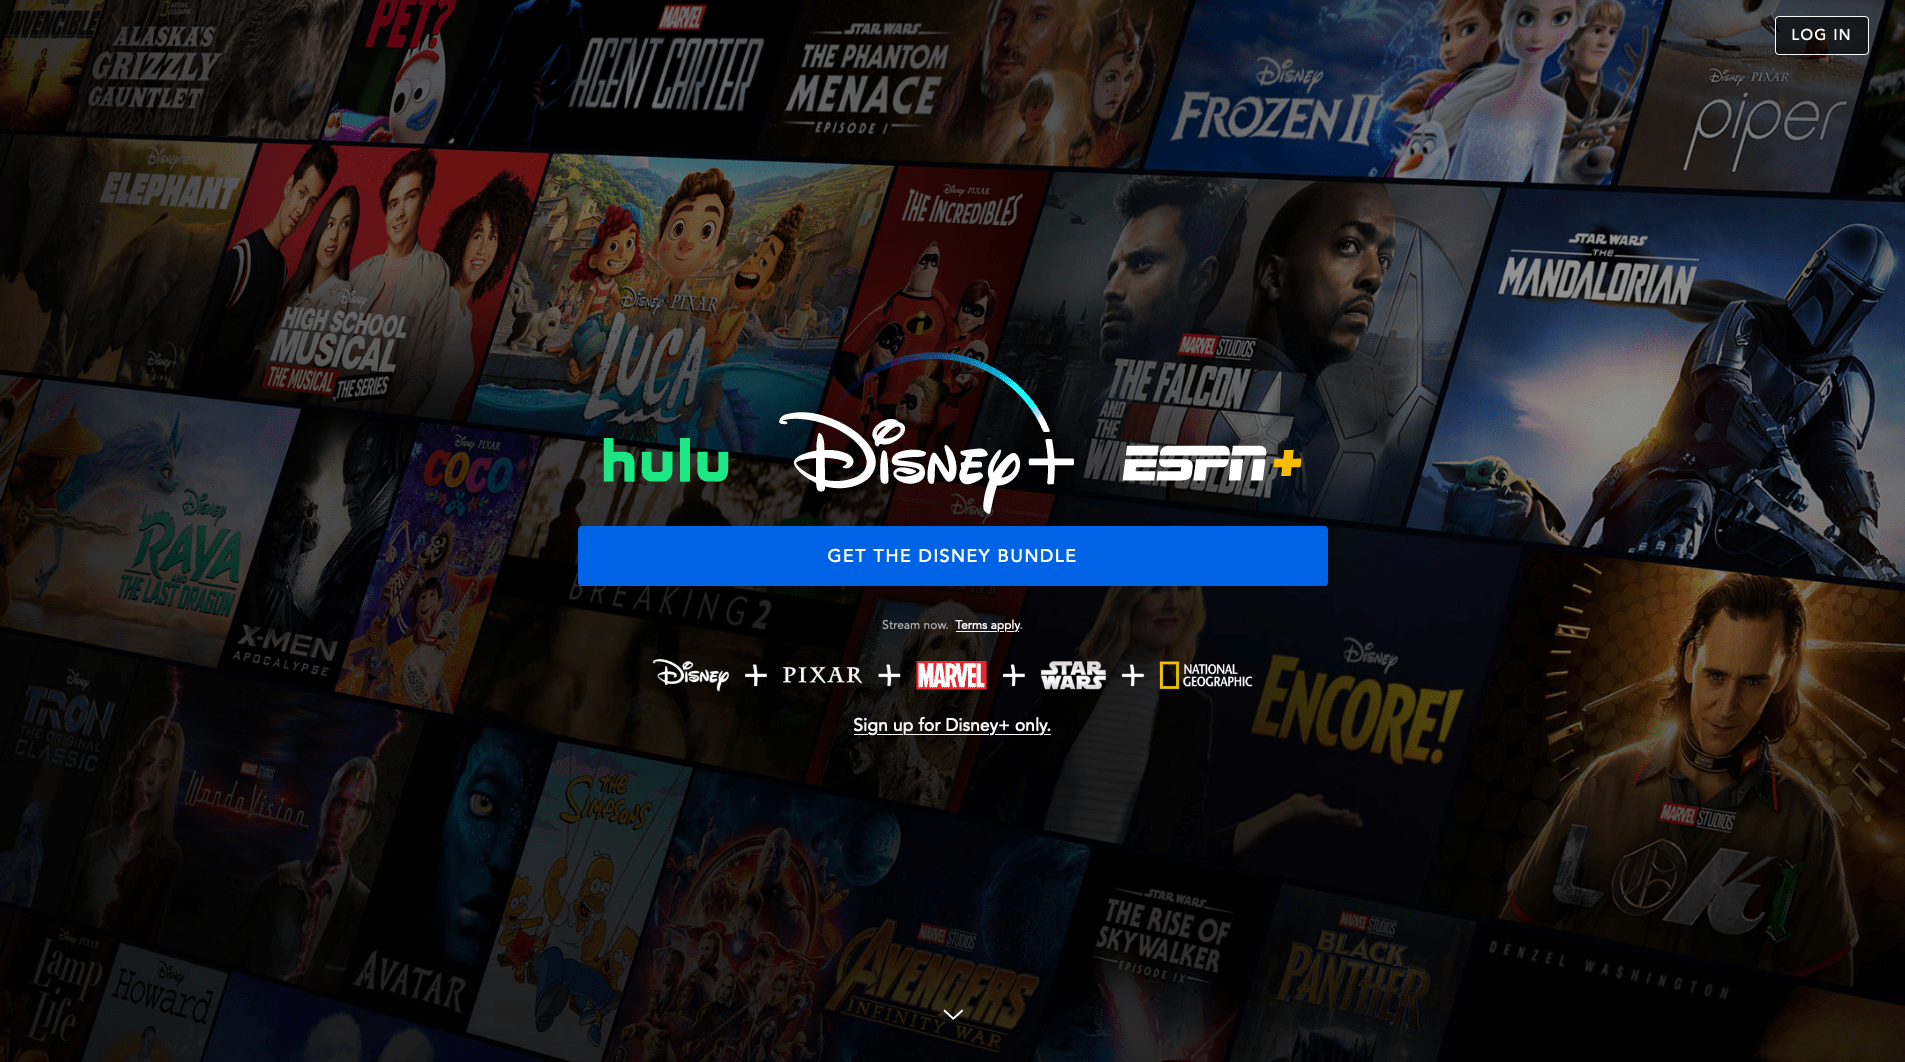 How to add Disney Plus Bundle with ESPN Plus to Your Existing Hulu Account?